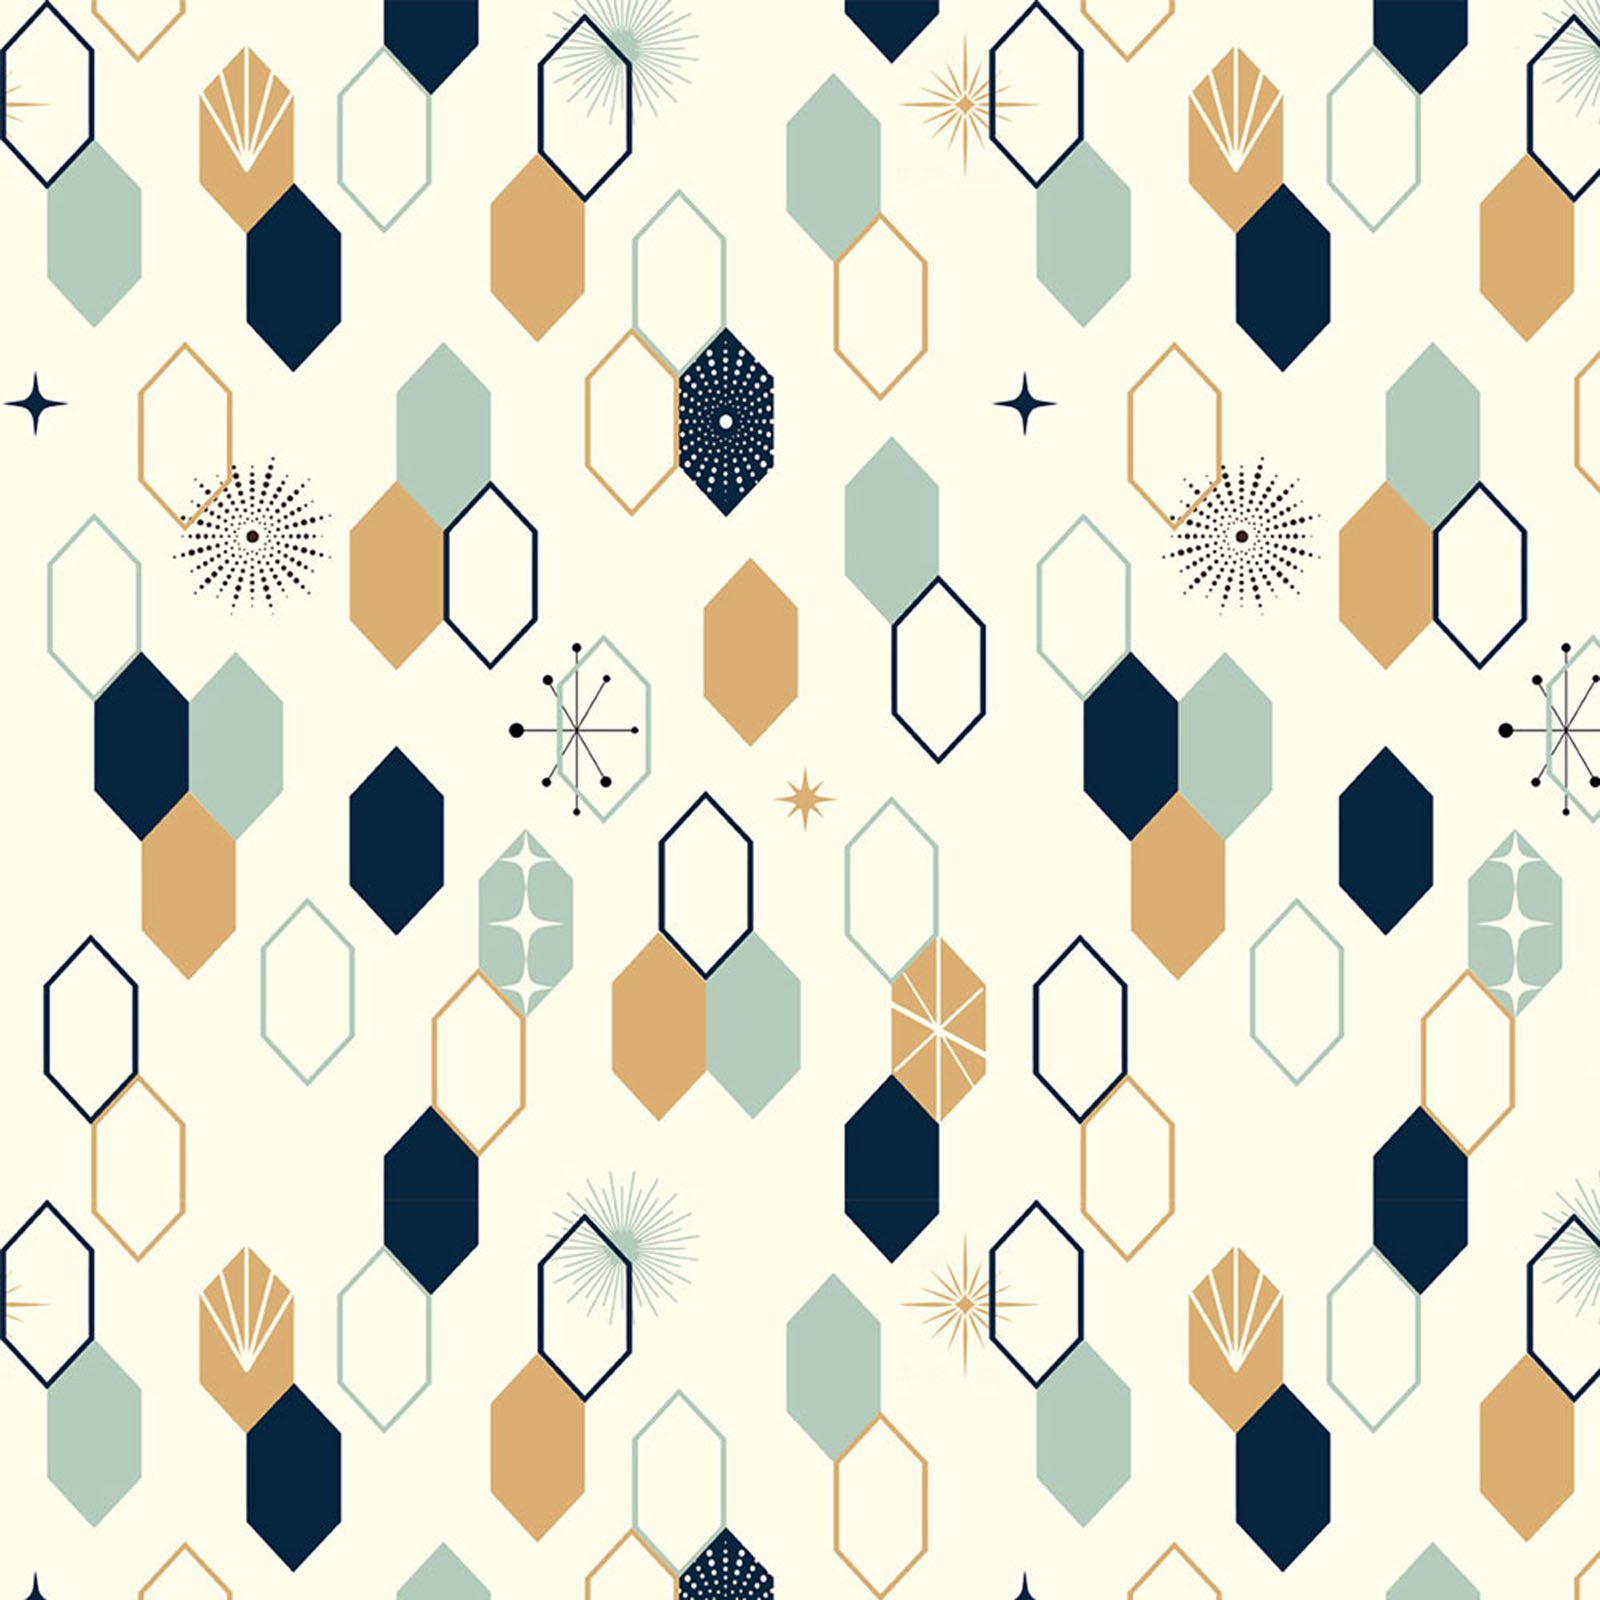 1/2 YARD- Mod Nouveau- Oblong Hex- Mint- Jay-Cyn- Birch Fabrics- Organic Cotton